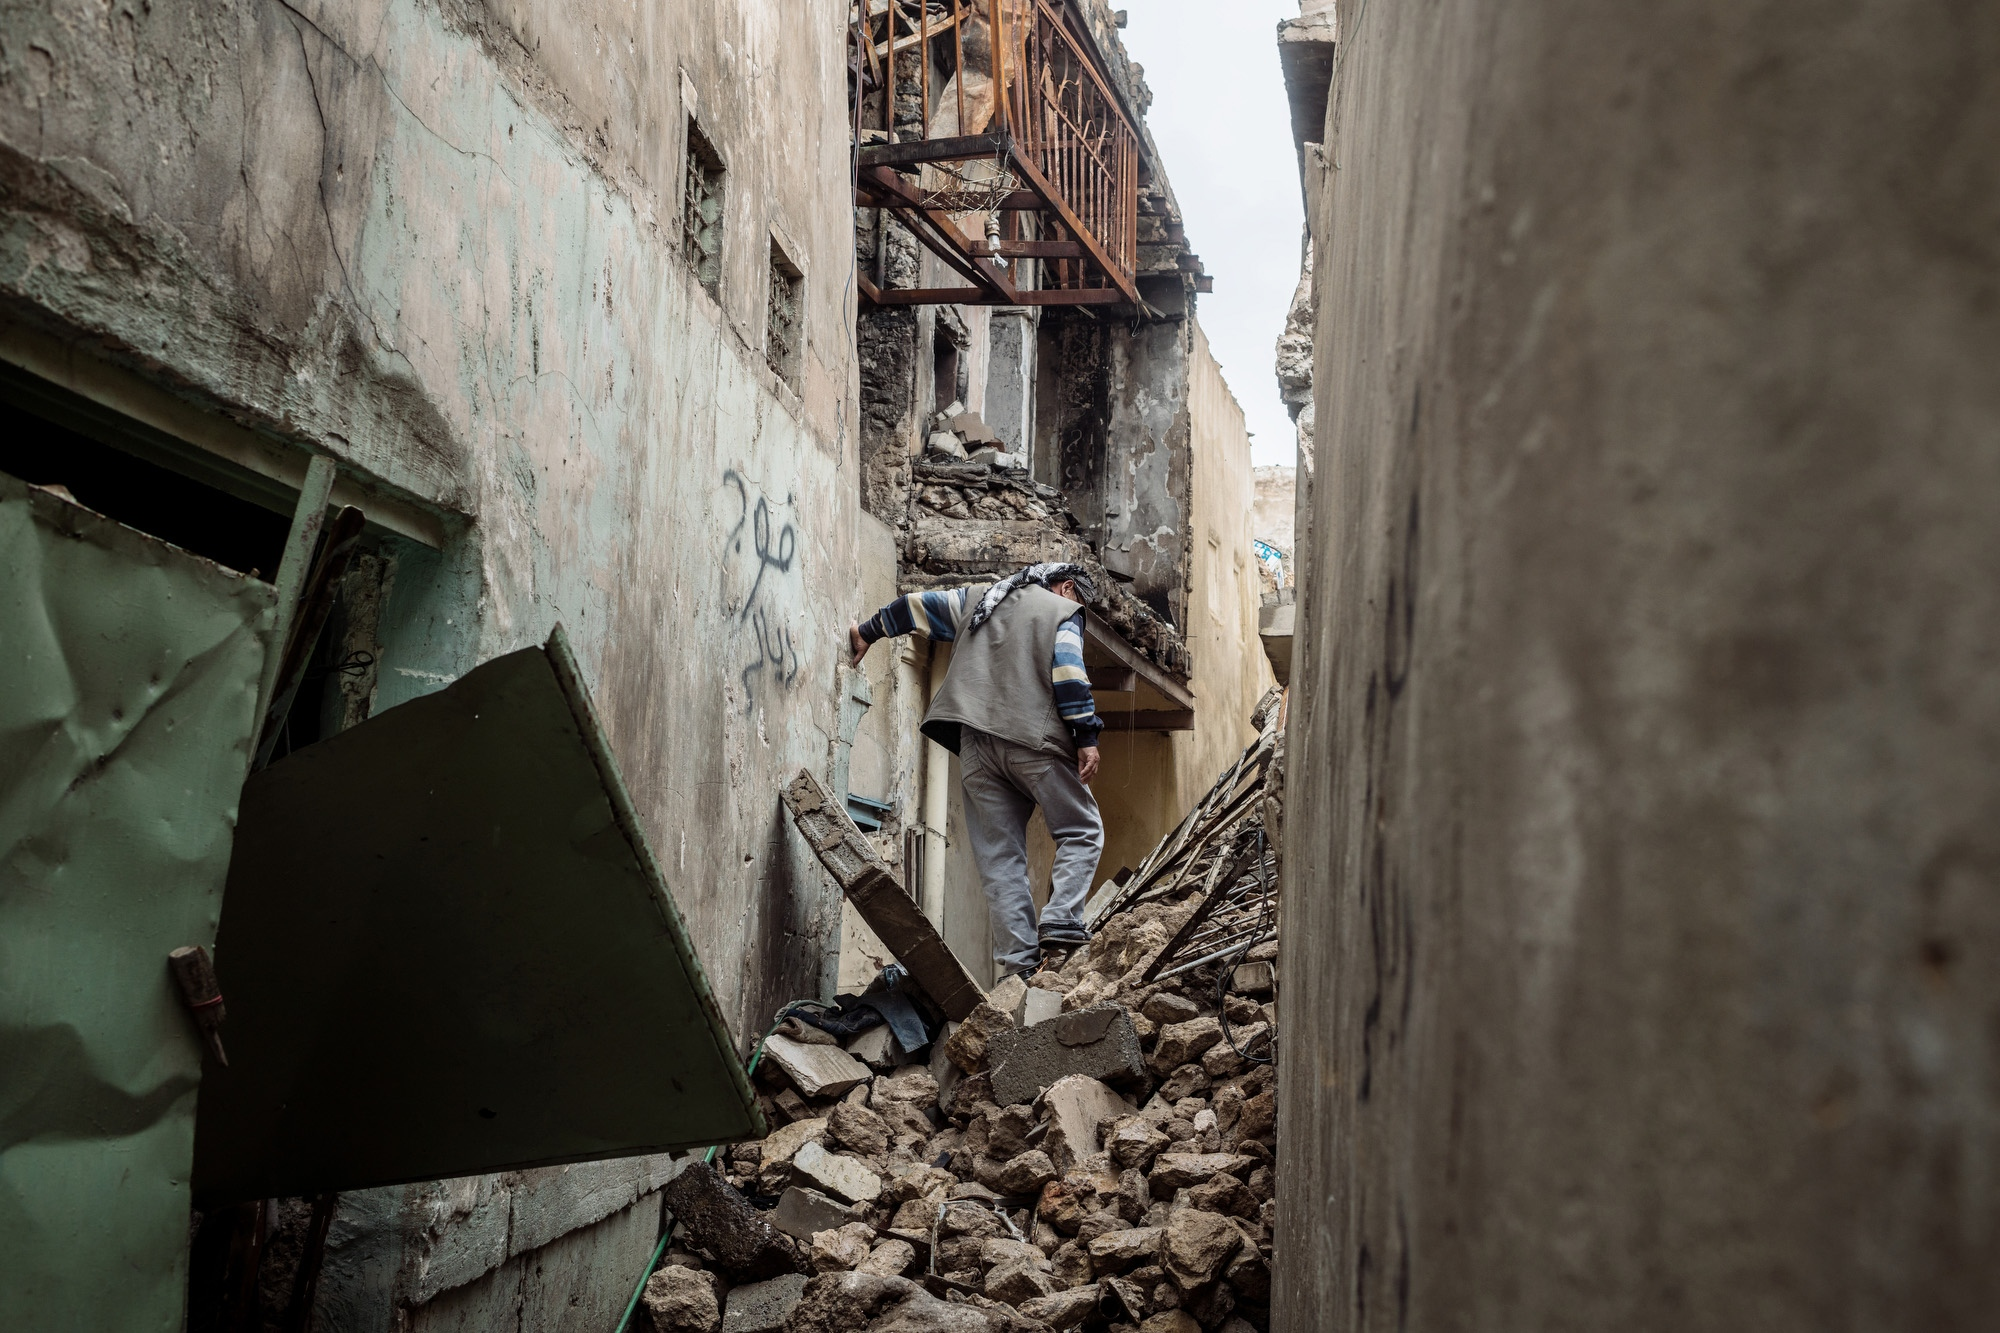 MOSUL 20180413 A man climbs through debris and rubble in an alley of Old Mosul, much of which was destroyed by coalition airstrikes during the liberation from ISIS. Photo: Vilhelm Stokstad / Kontinent